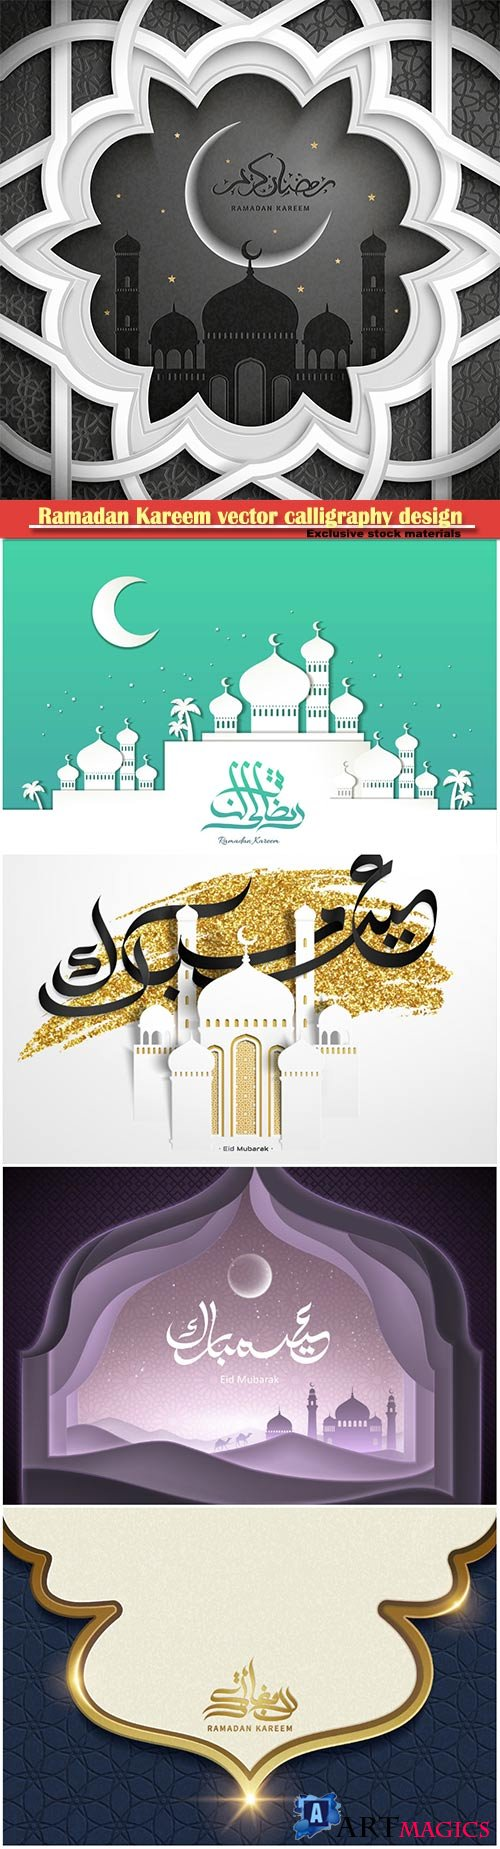 Ramadan Kareem vector calligraphy design with decorative floral pattern,mosque silhouette, crescent and glittering islamic background # 14